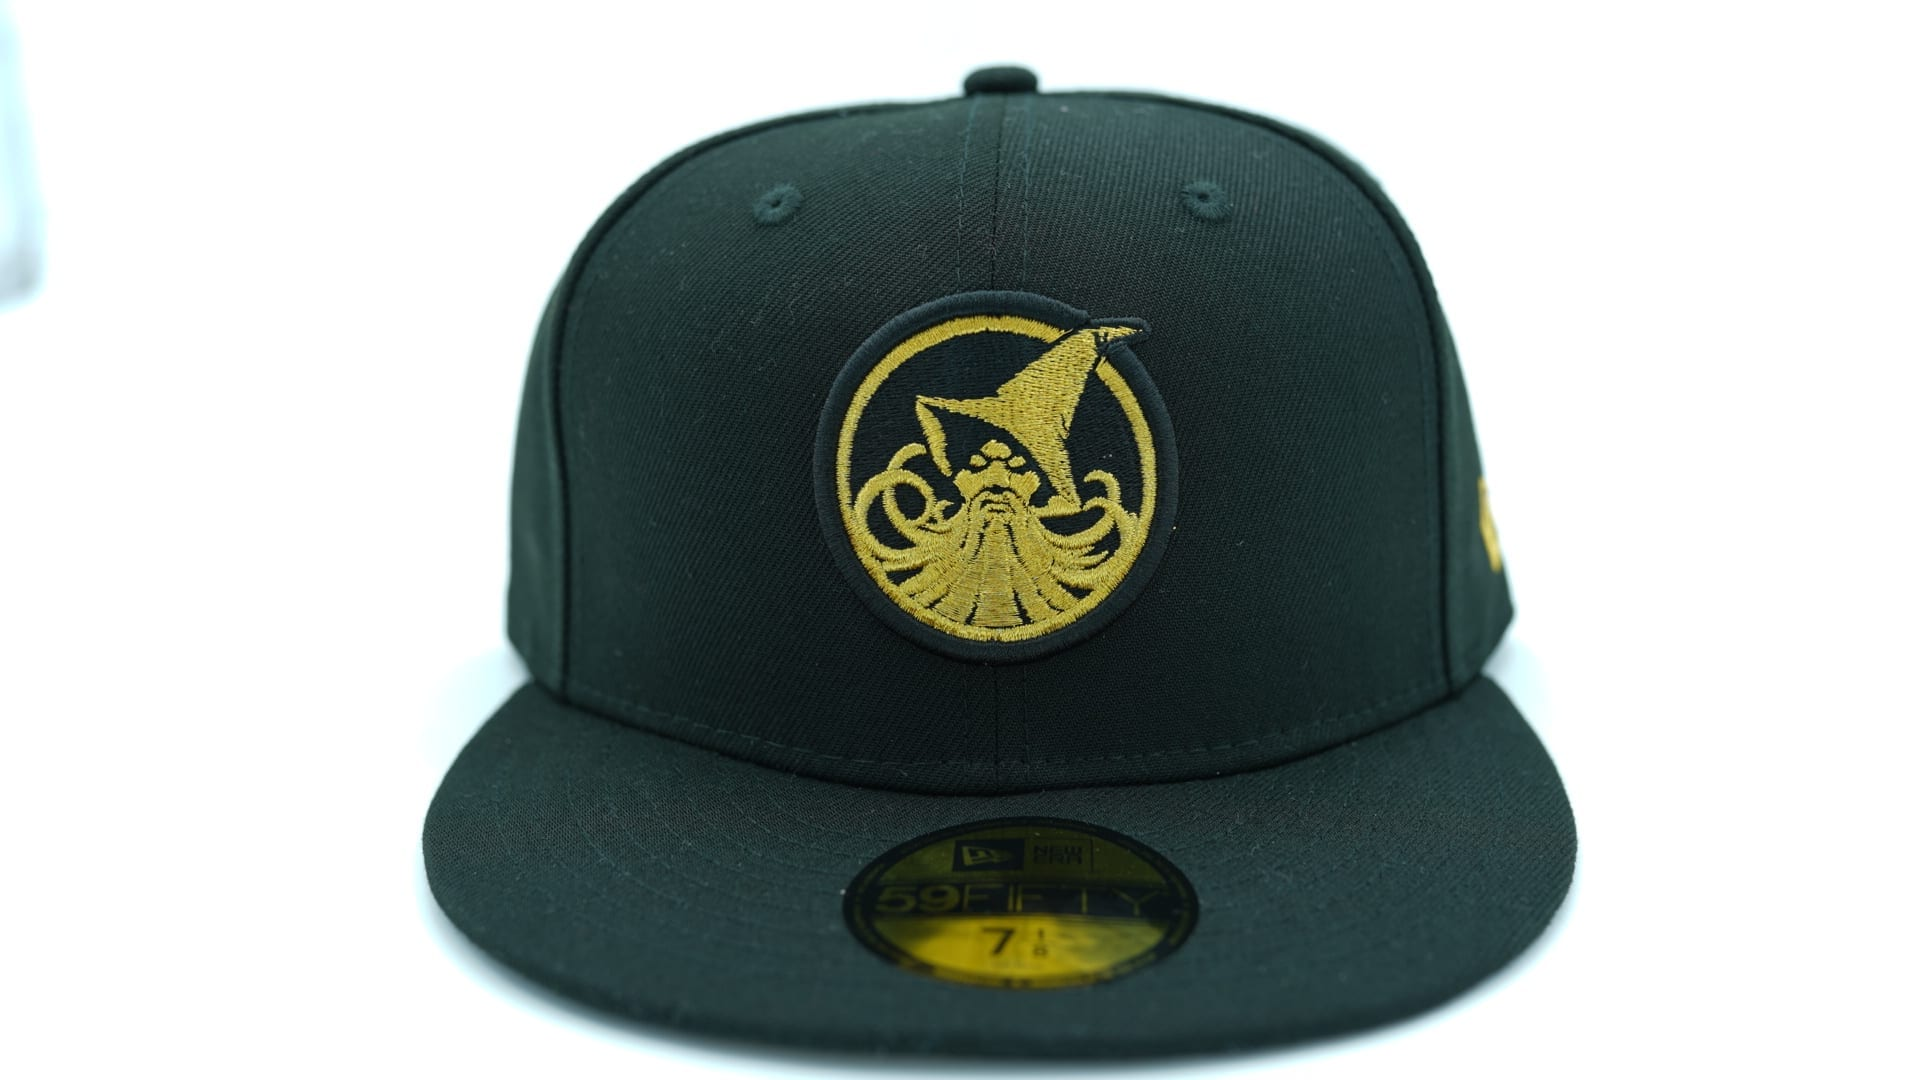 ef49f067e64 NEW ERA x NRL「Gold Coast Titans」59Fifty Fitted Baseball Cap ...